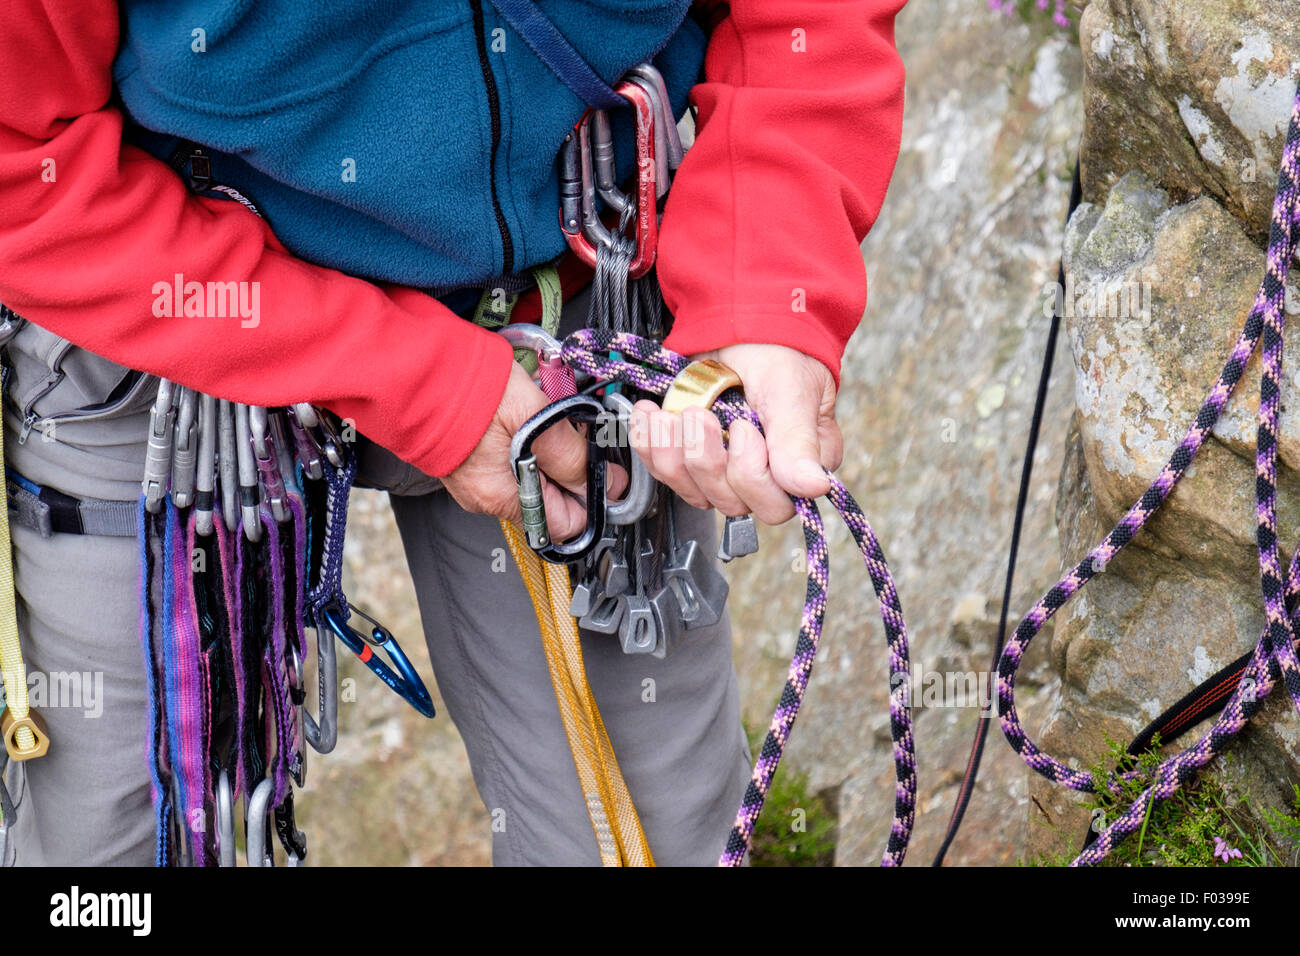 Climber with a climbing rope and belay device rappel descender tying in attaching to a harness karabiner for belaying. - Stock Image